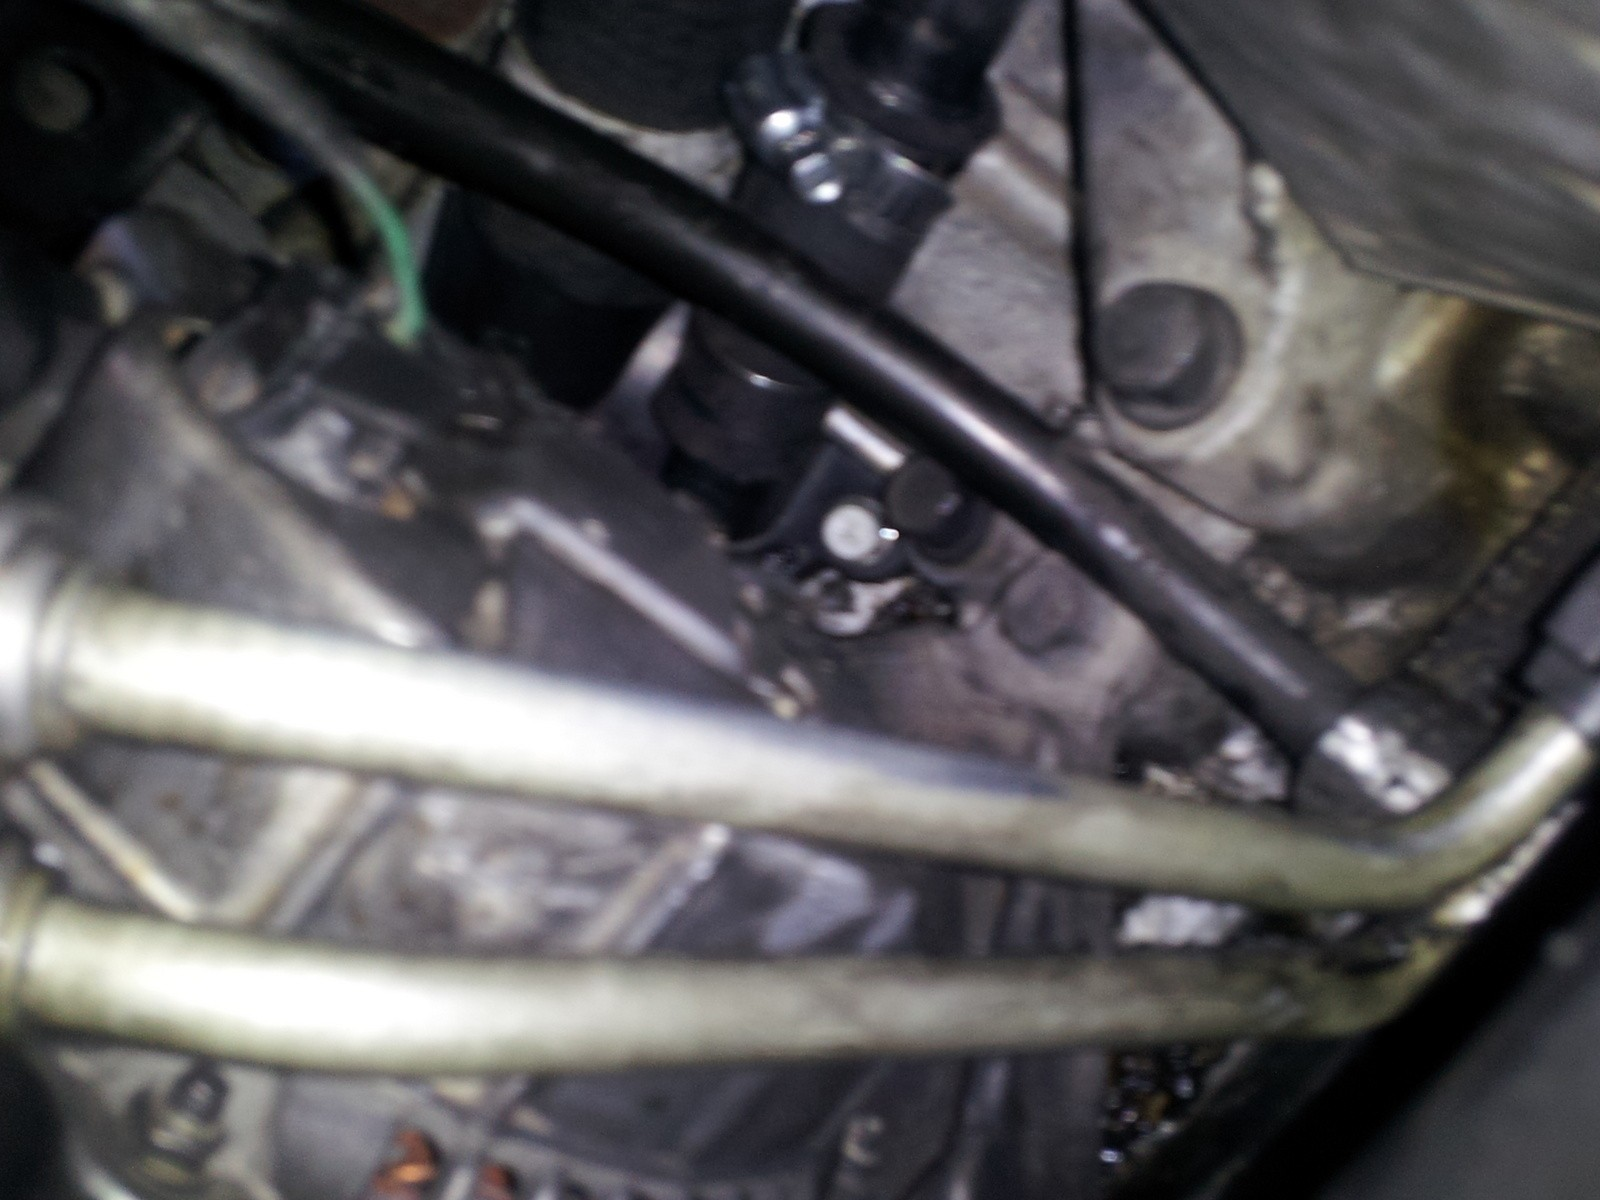 2002 Sebring Engine Diagram Dodge Intrepid Questions 2 7 Engine Have A Little Hole that Keeps Of 2002 Sebring Engine Diagram 2002 Chrysler town and Country Transmission Wiring Wiring Diagram Used